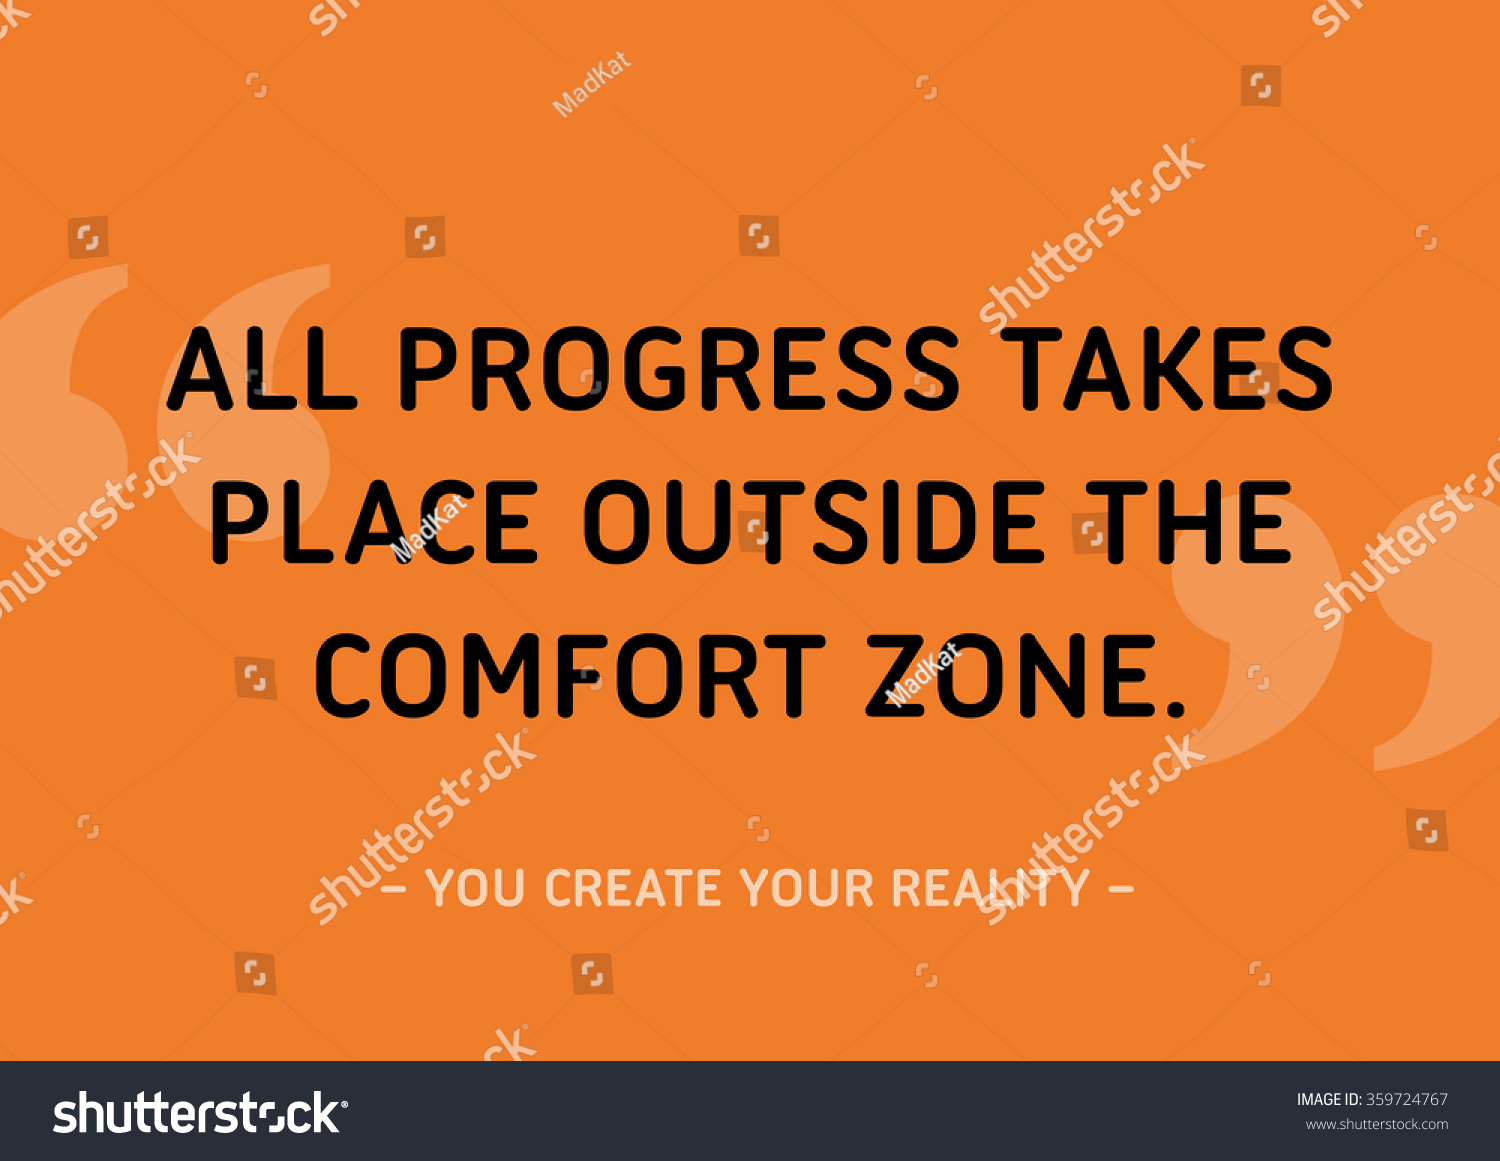 Creating comfort: a selection of quotes